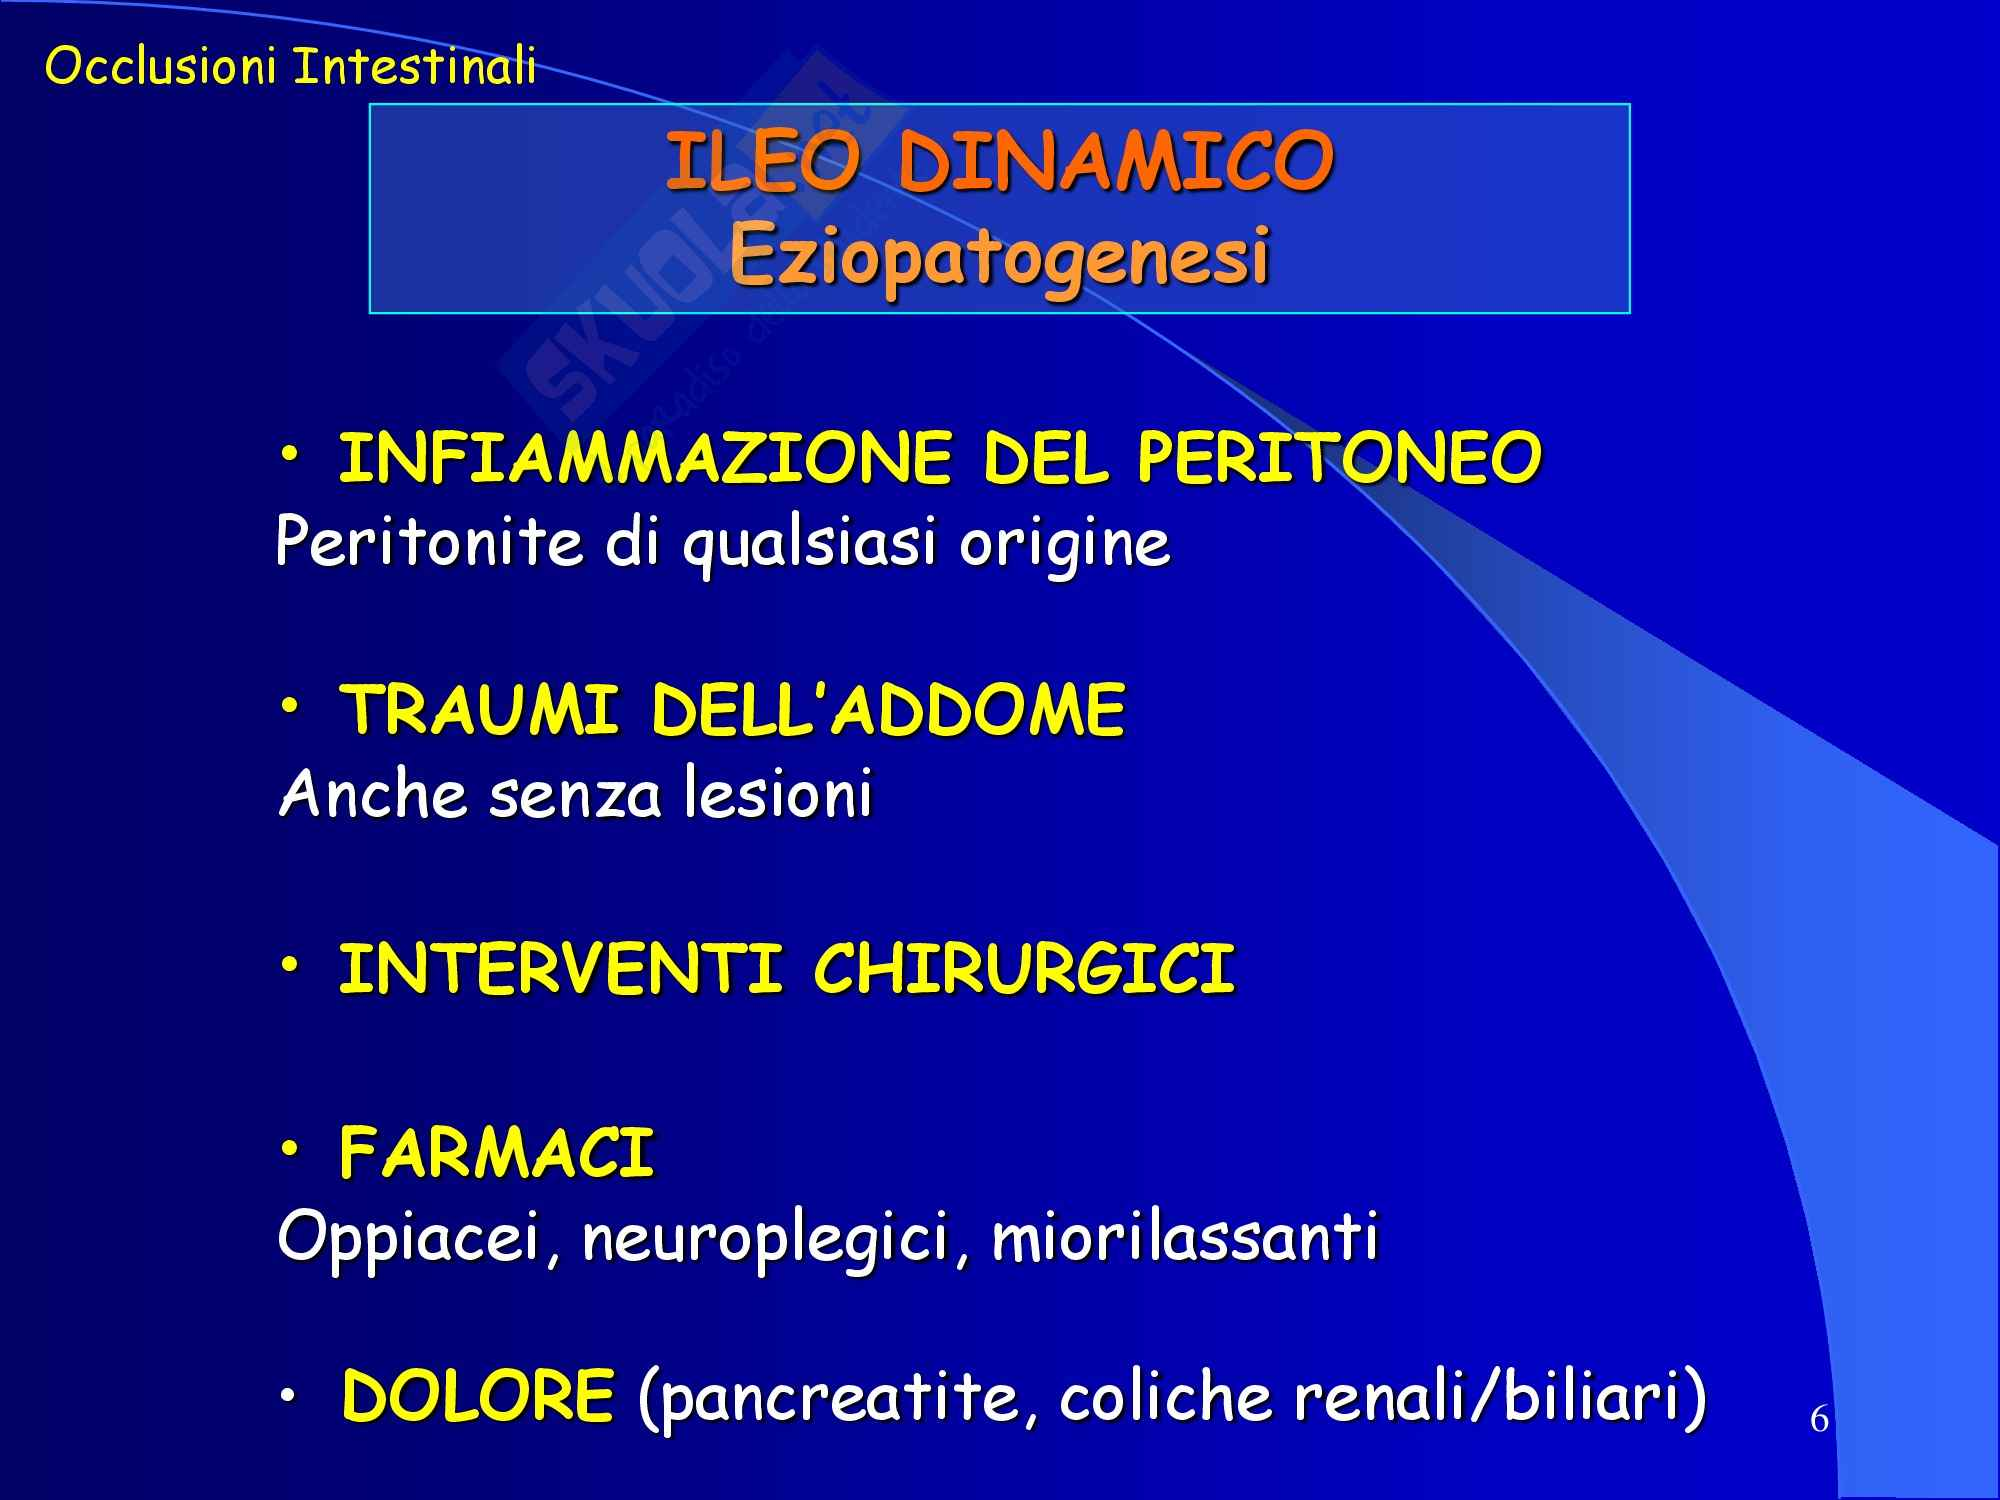 Occlusione Intestinale - parte 2 Pag. 6